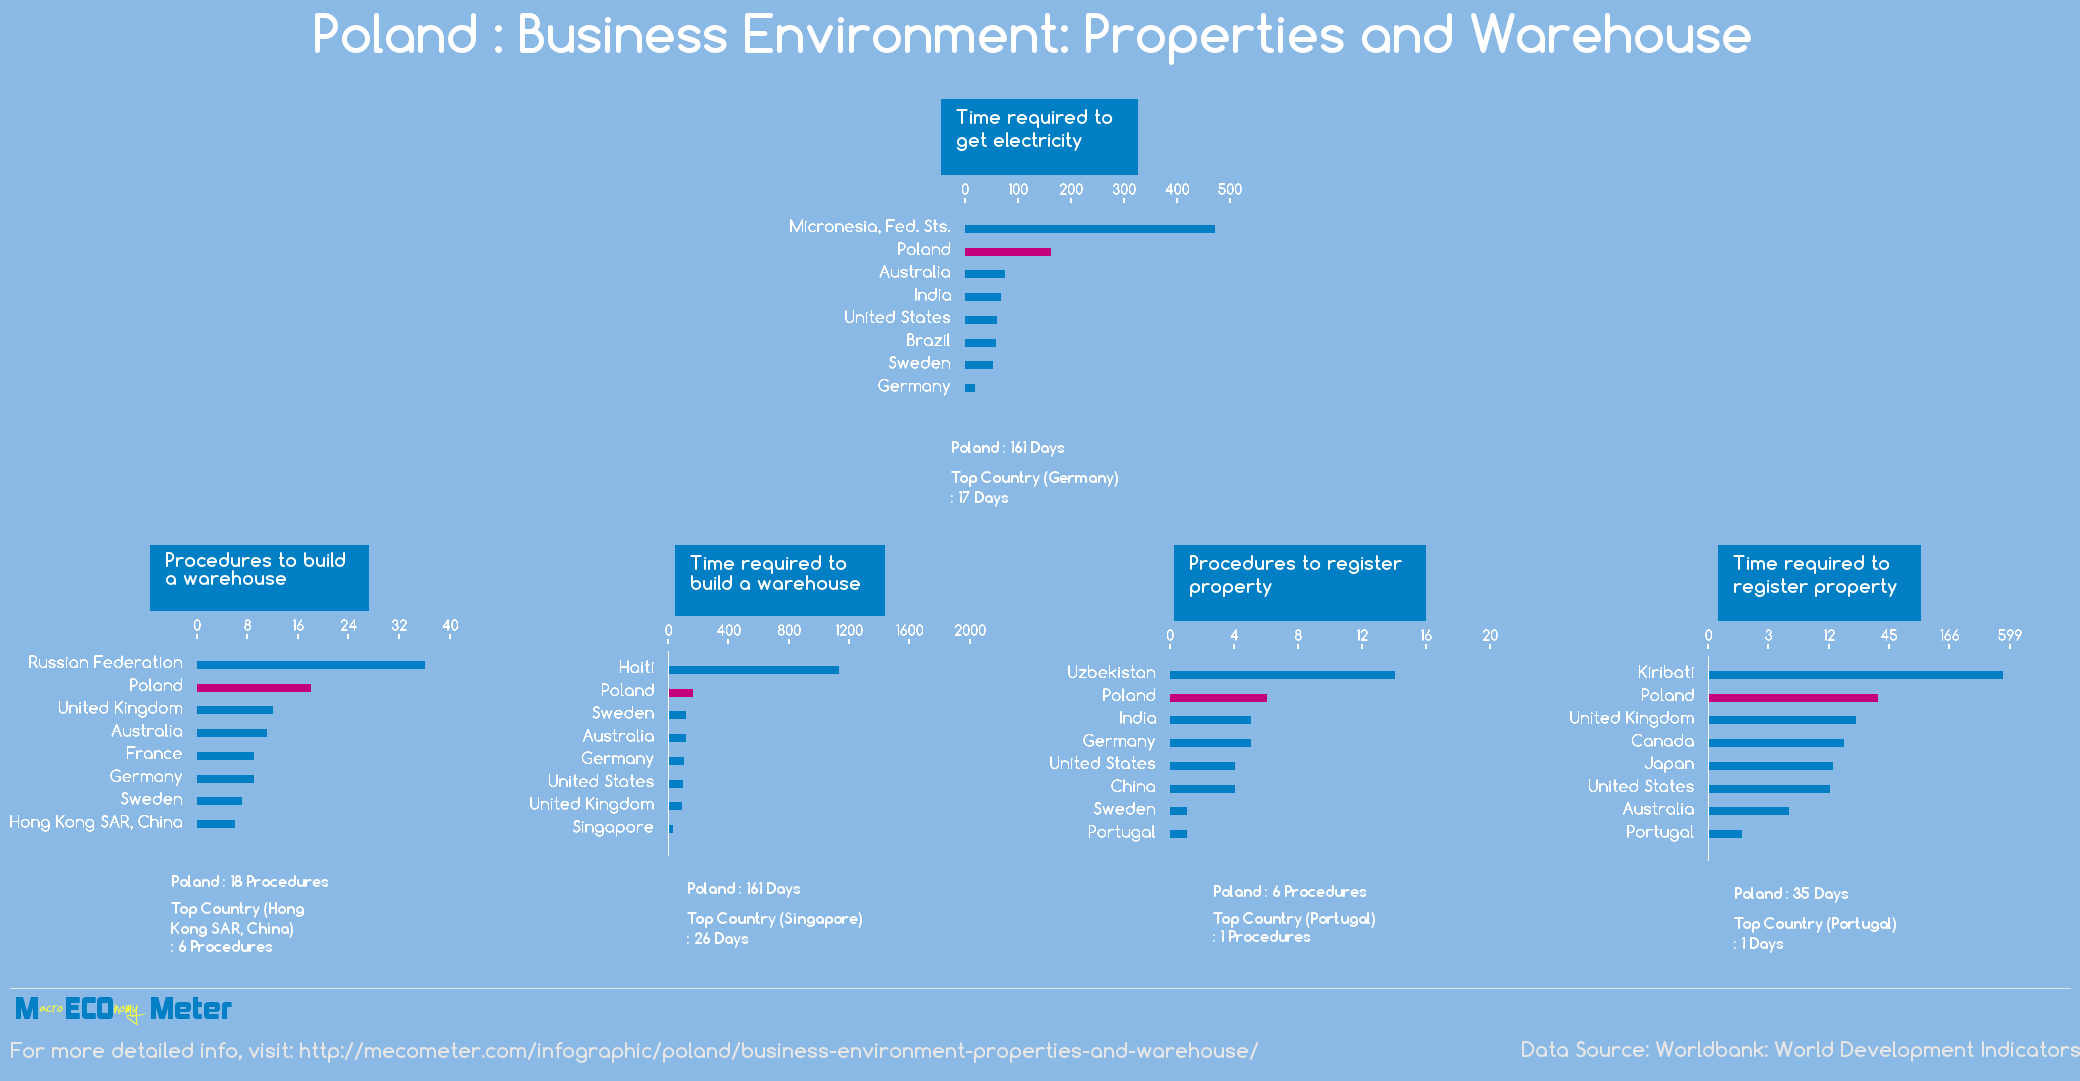 Poland : Business Environment: Properties and Warehouse